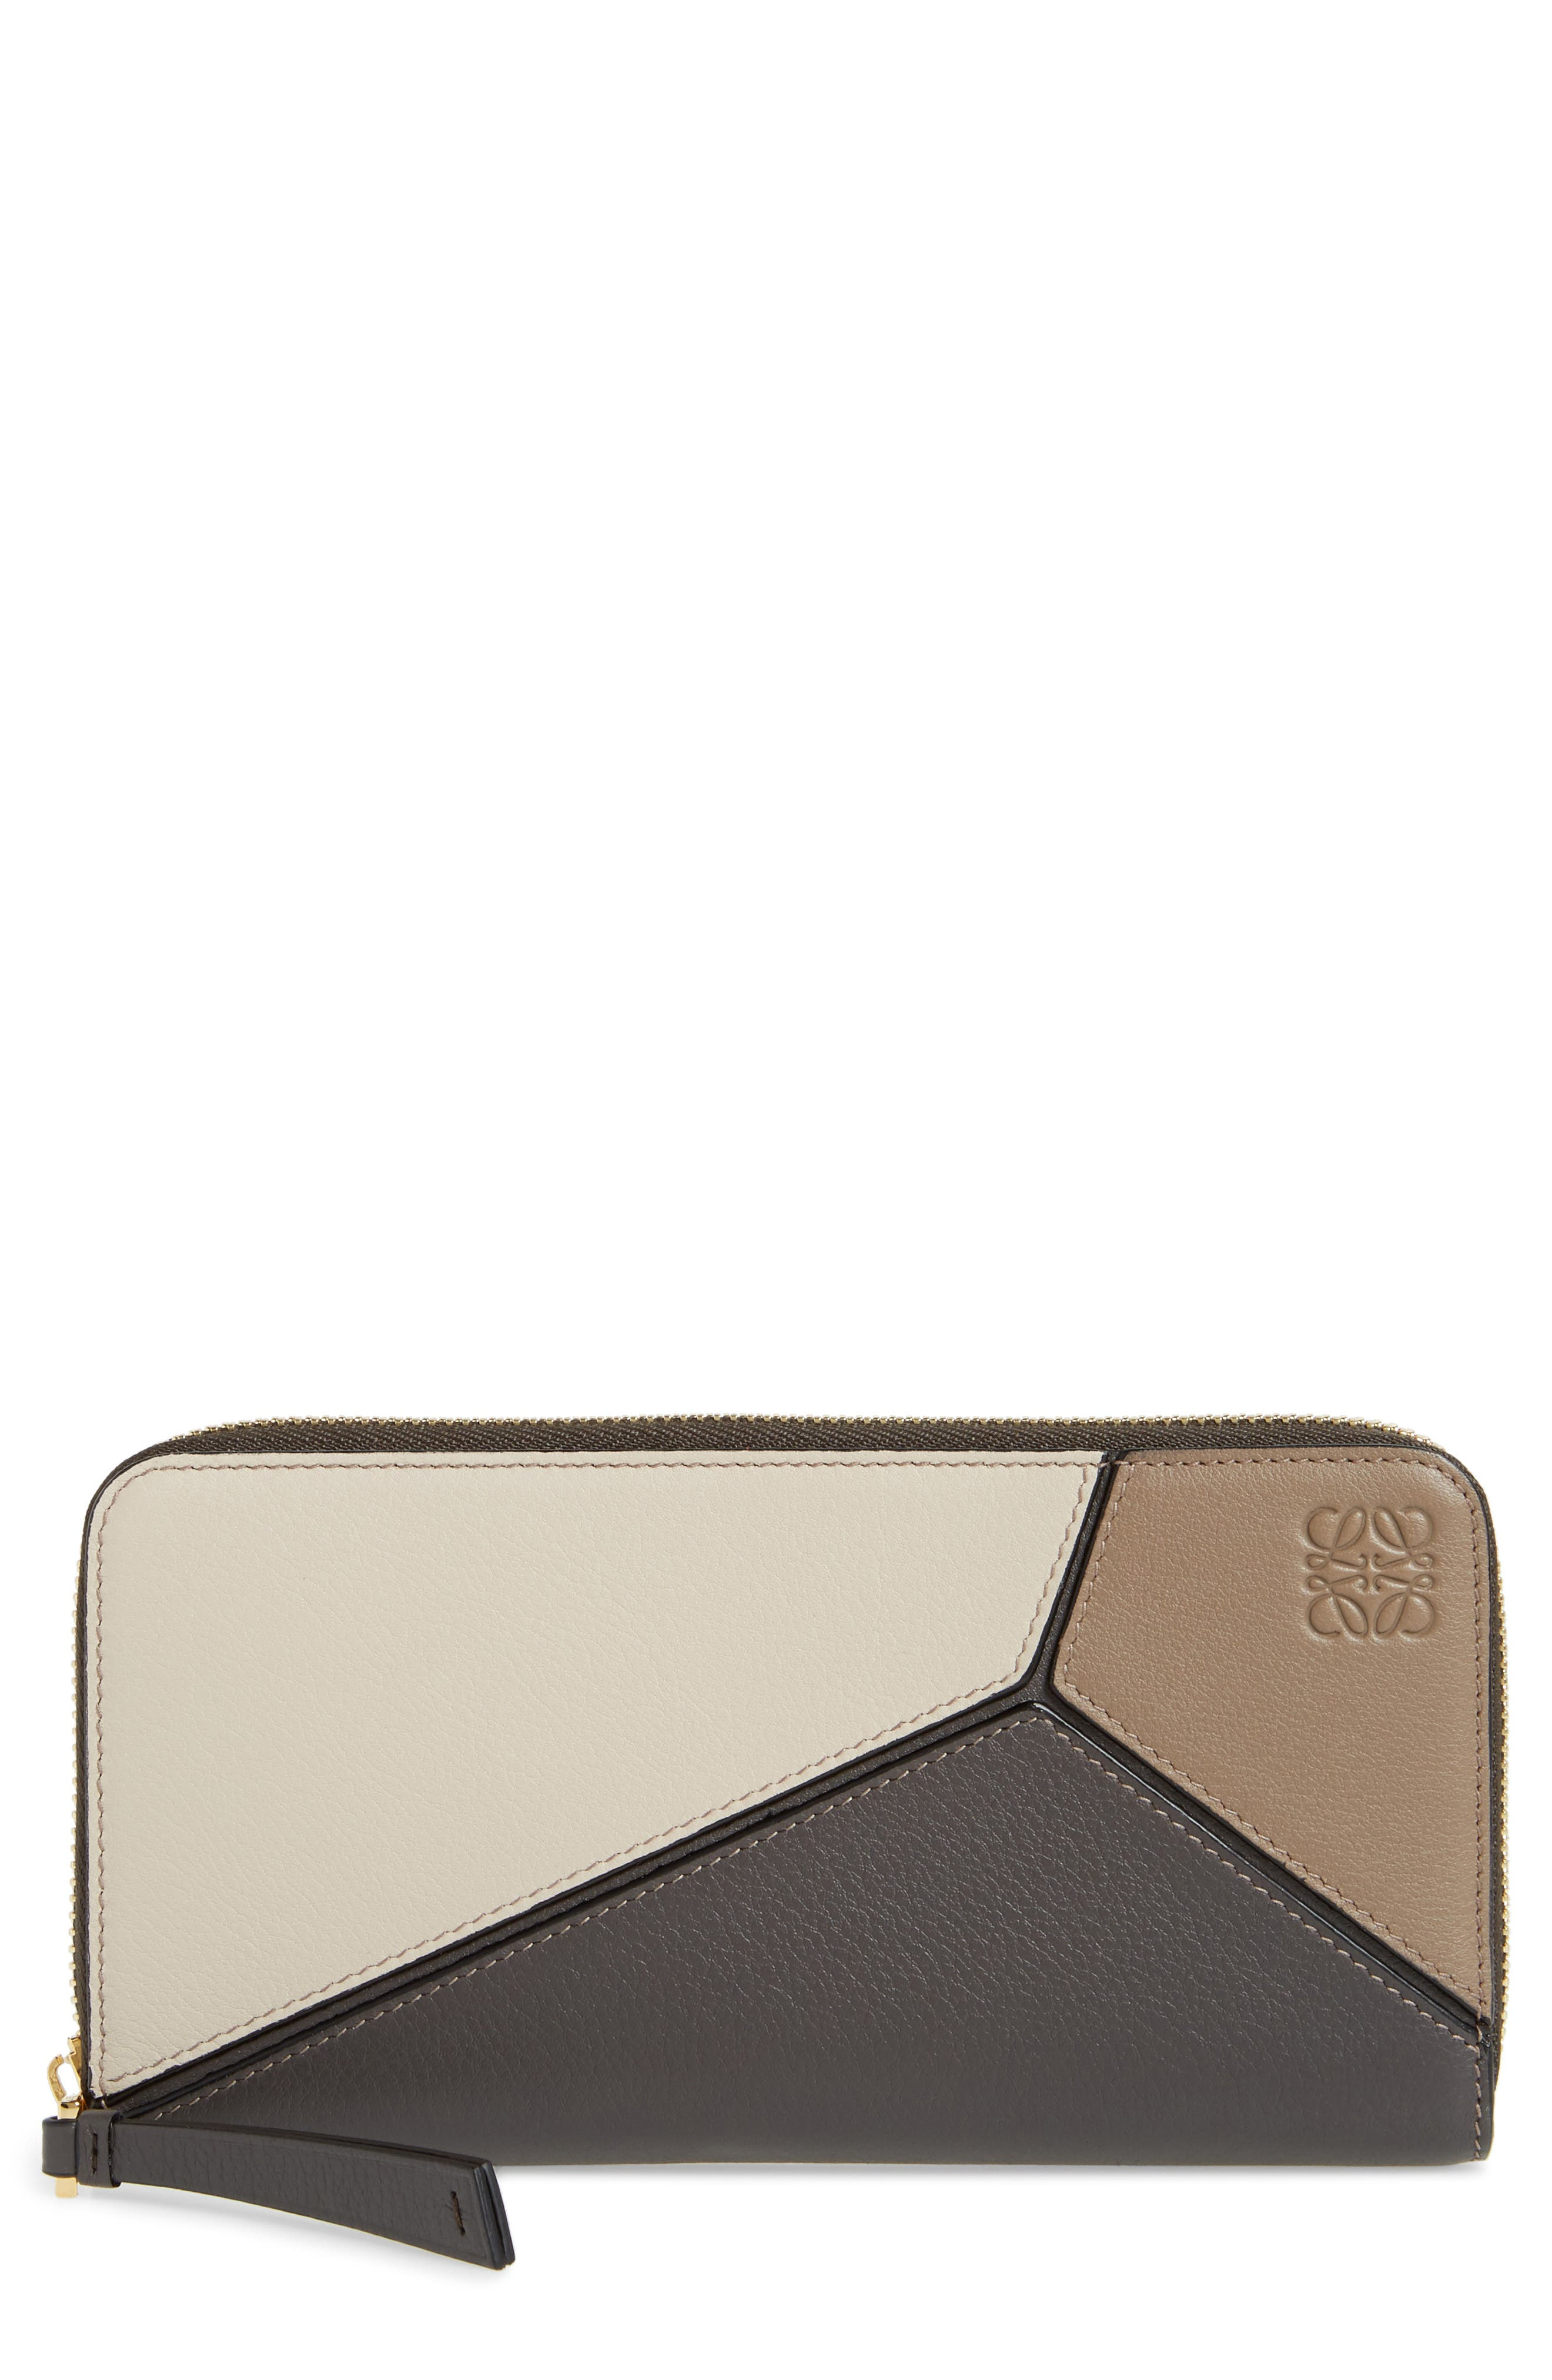 Alternate Image 1 Selected - Loewe Puzzle Leather Zip Around Wallet